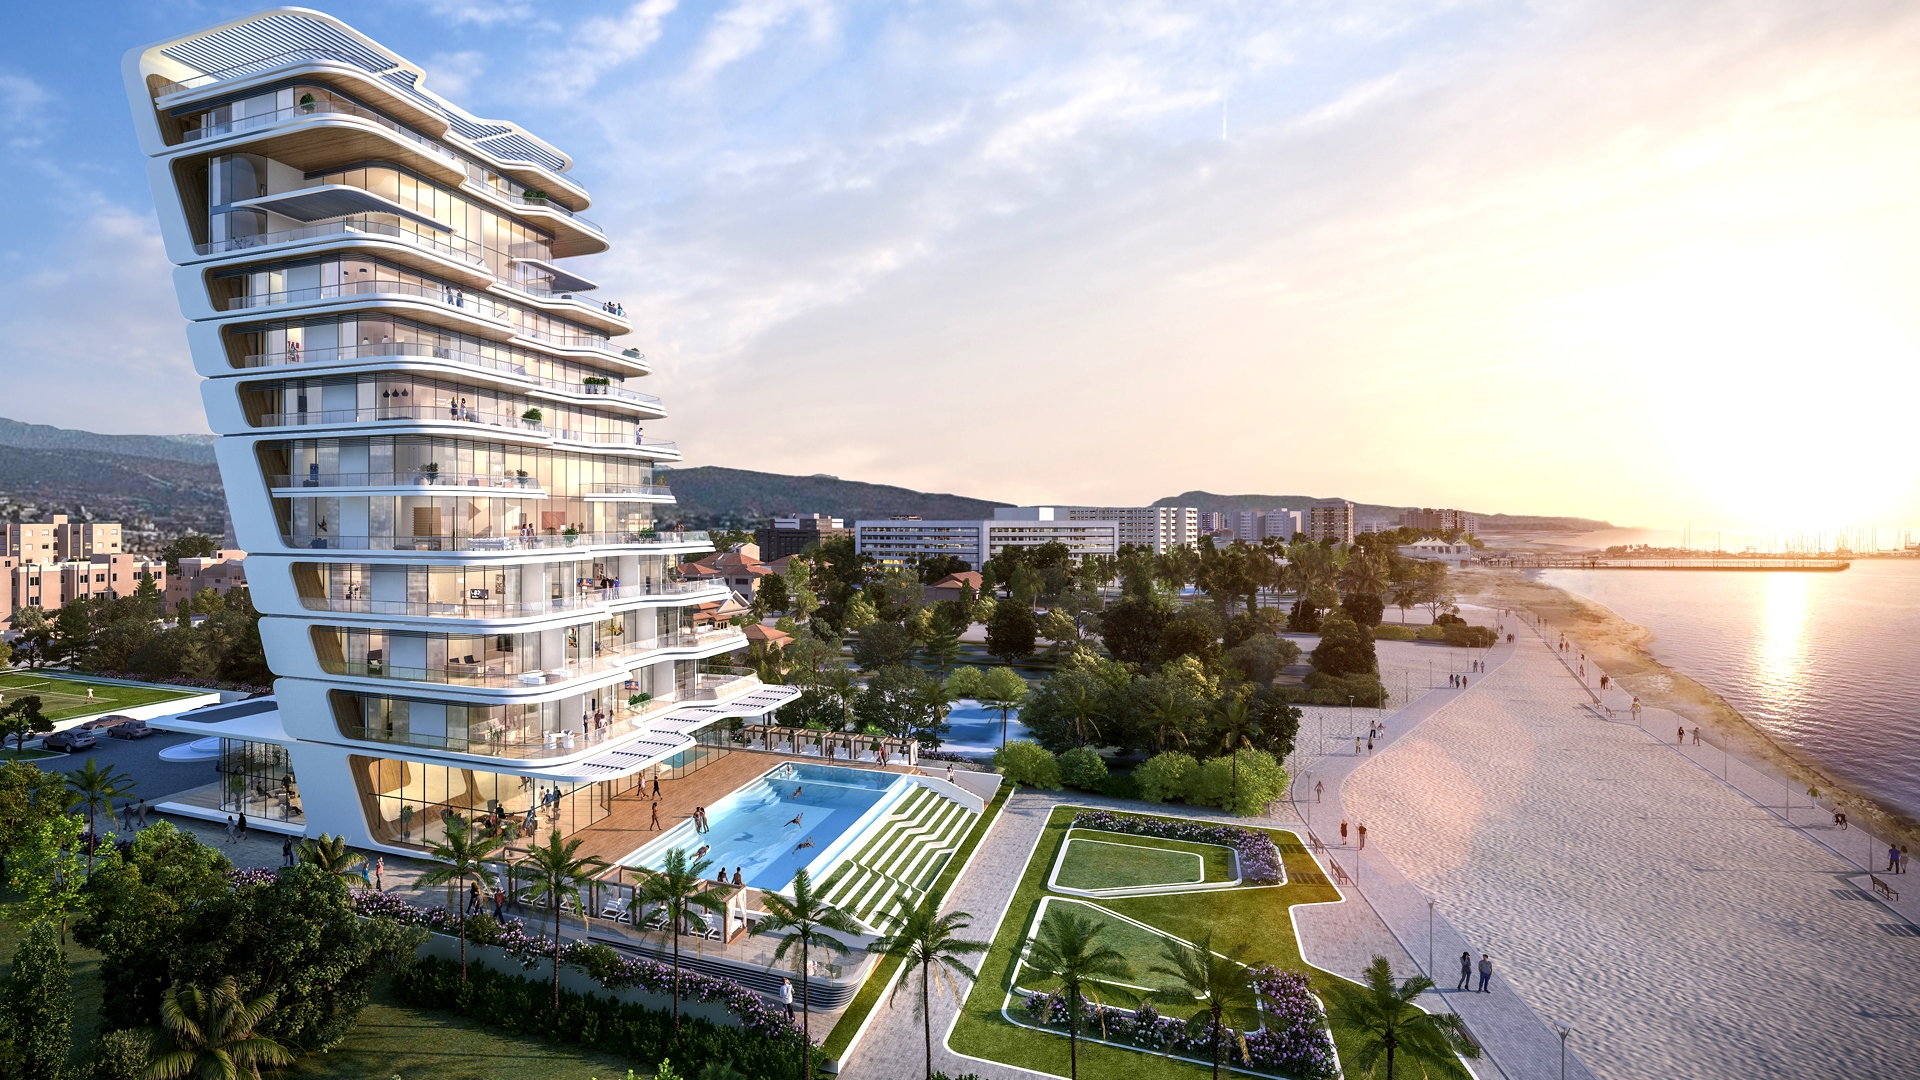 Marco Polo Sea front Apartments for sale in Limassol Cyprus, Marco Polo, Luxury properties for sale in Limassol Cyprus